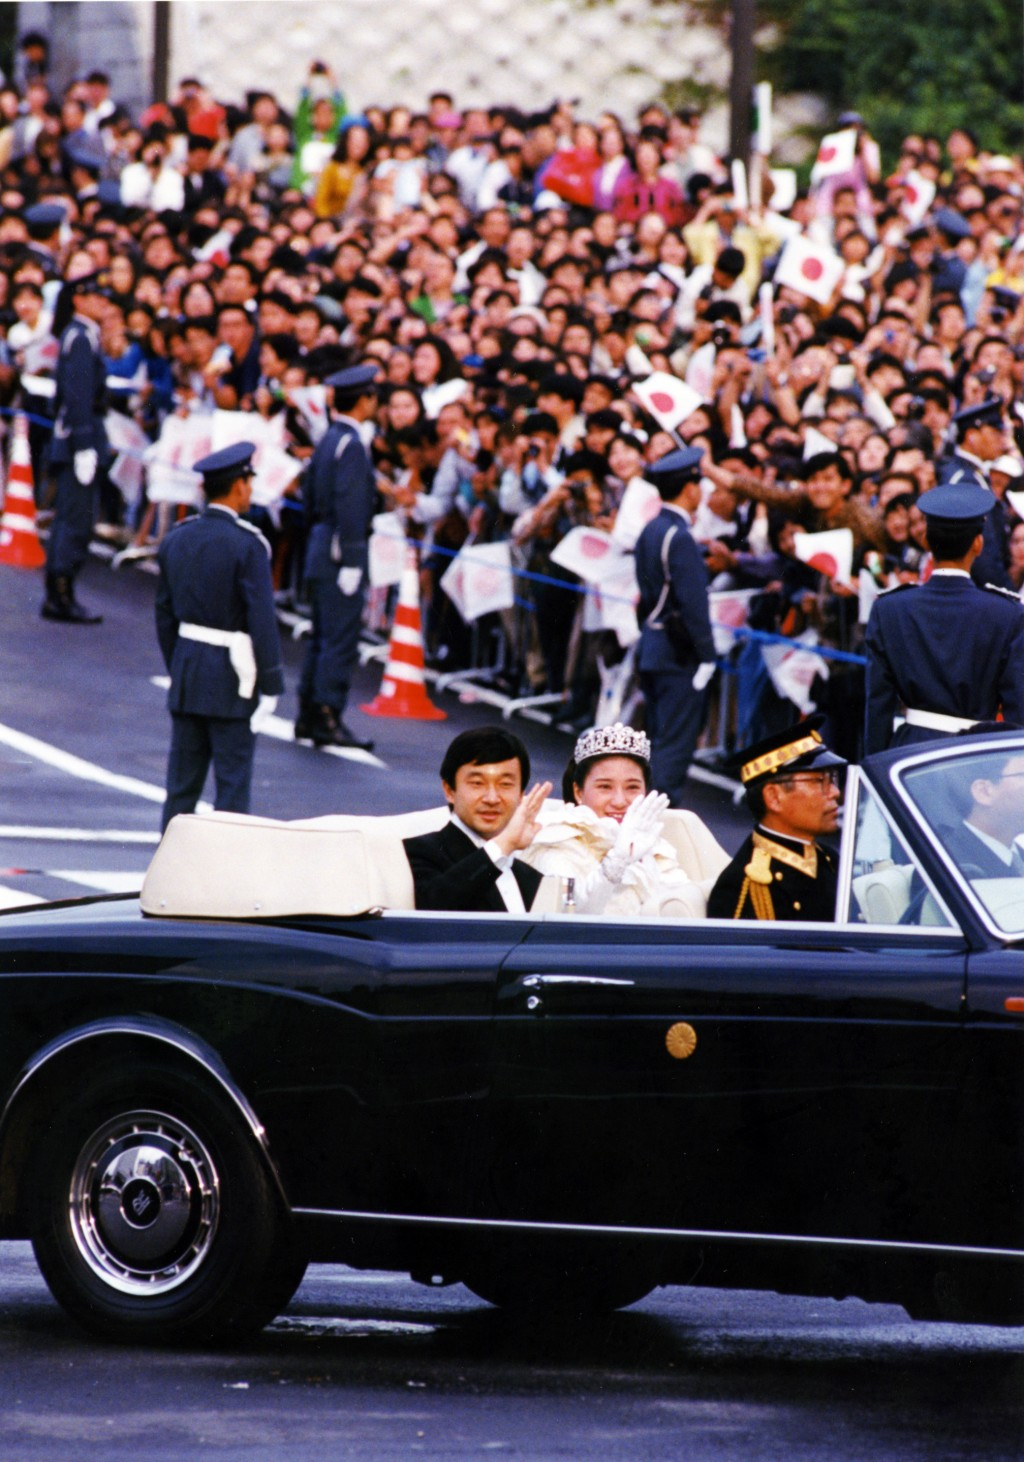 FILE - In this June 9, 1993, file photo, then Crown Prince Naruhito and Princess Masako wave to well-wishers from a limousine during a parade through ...